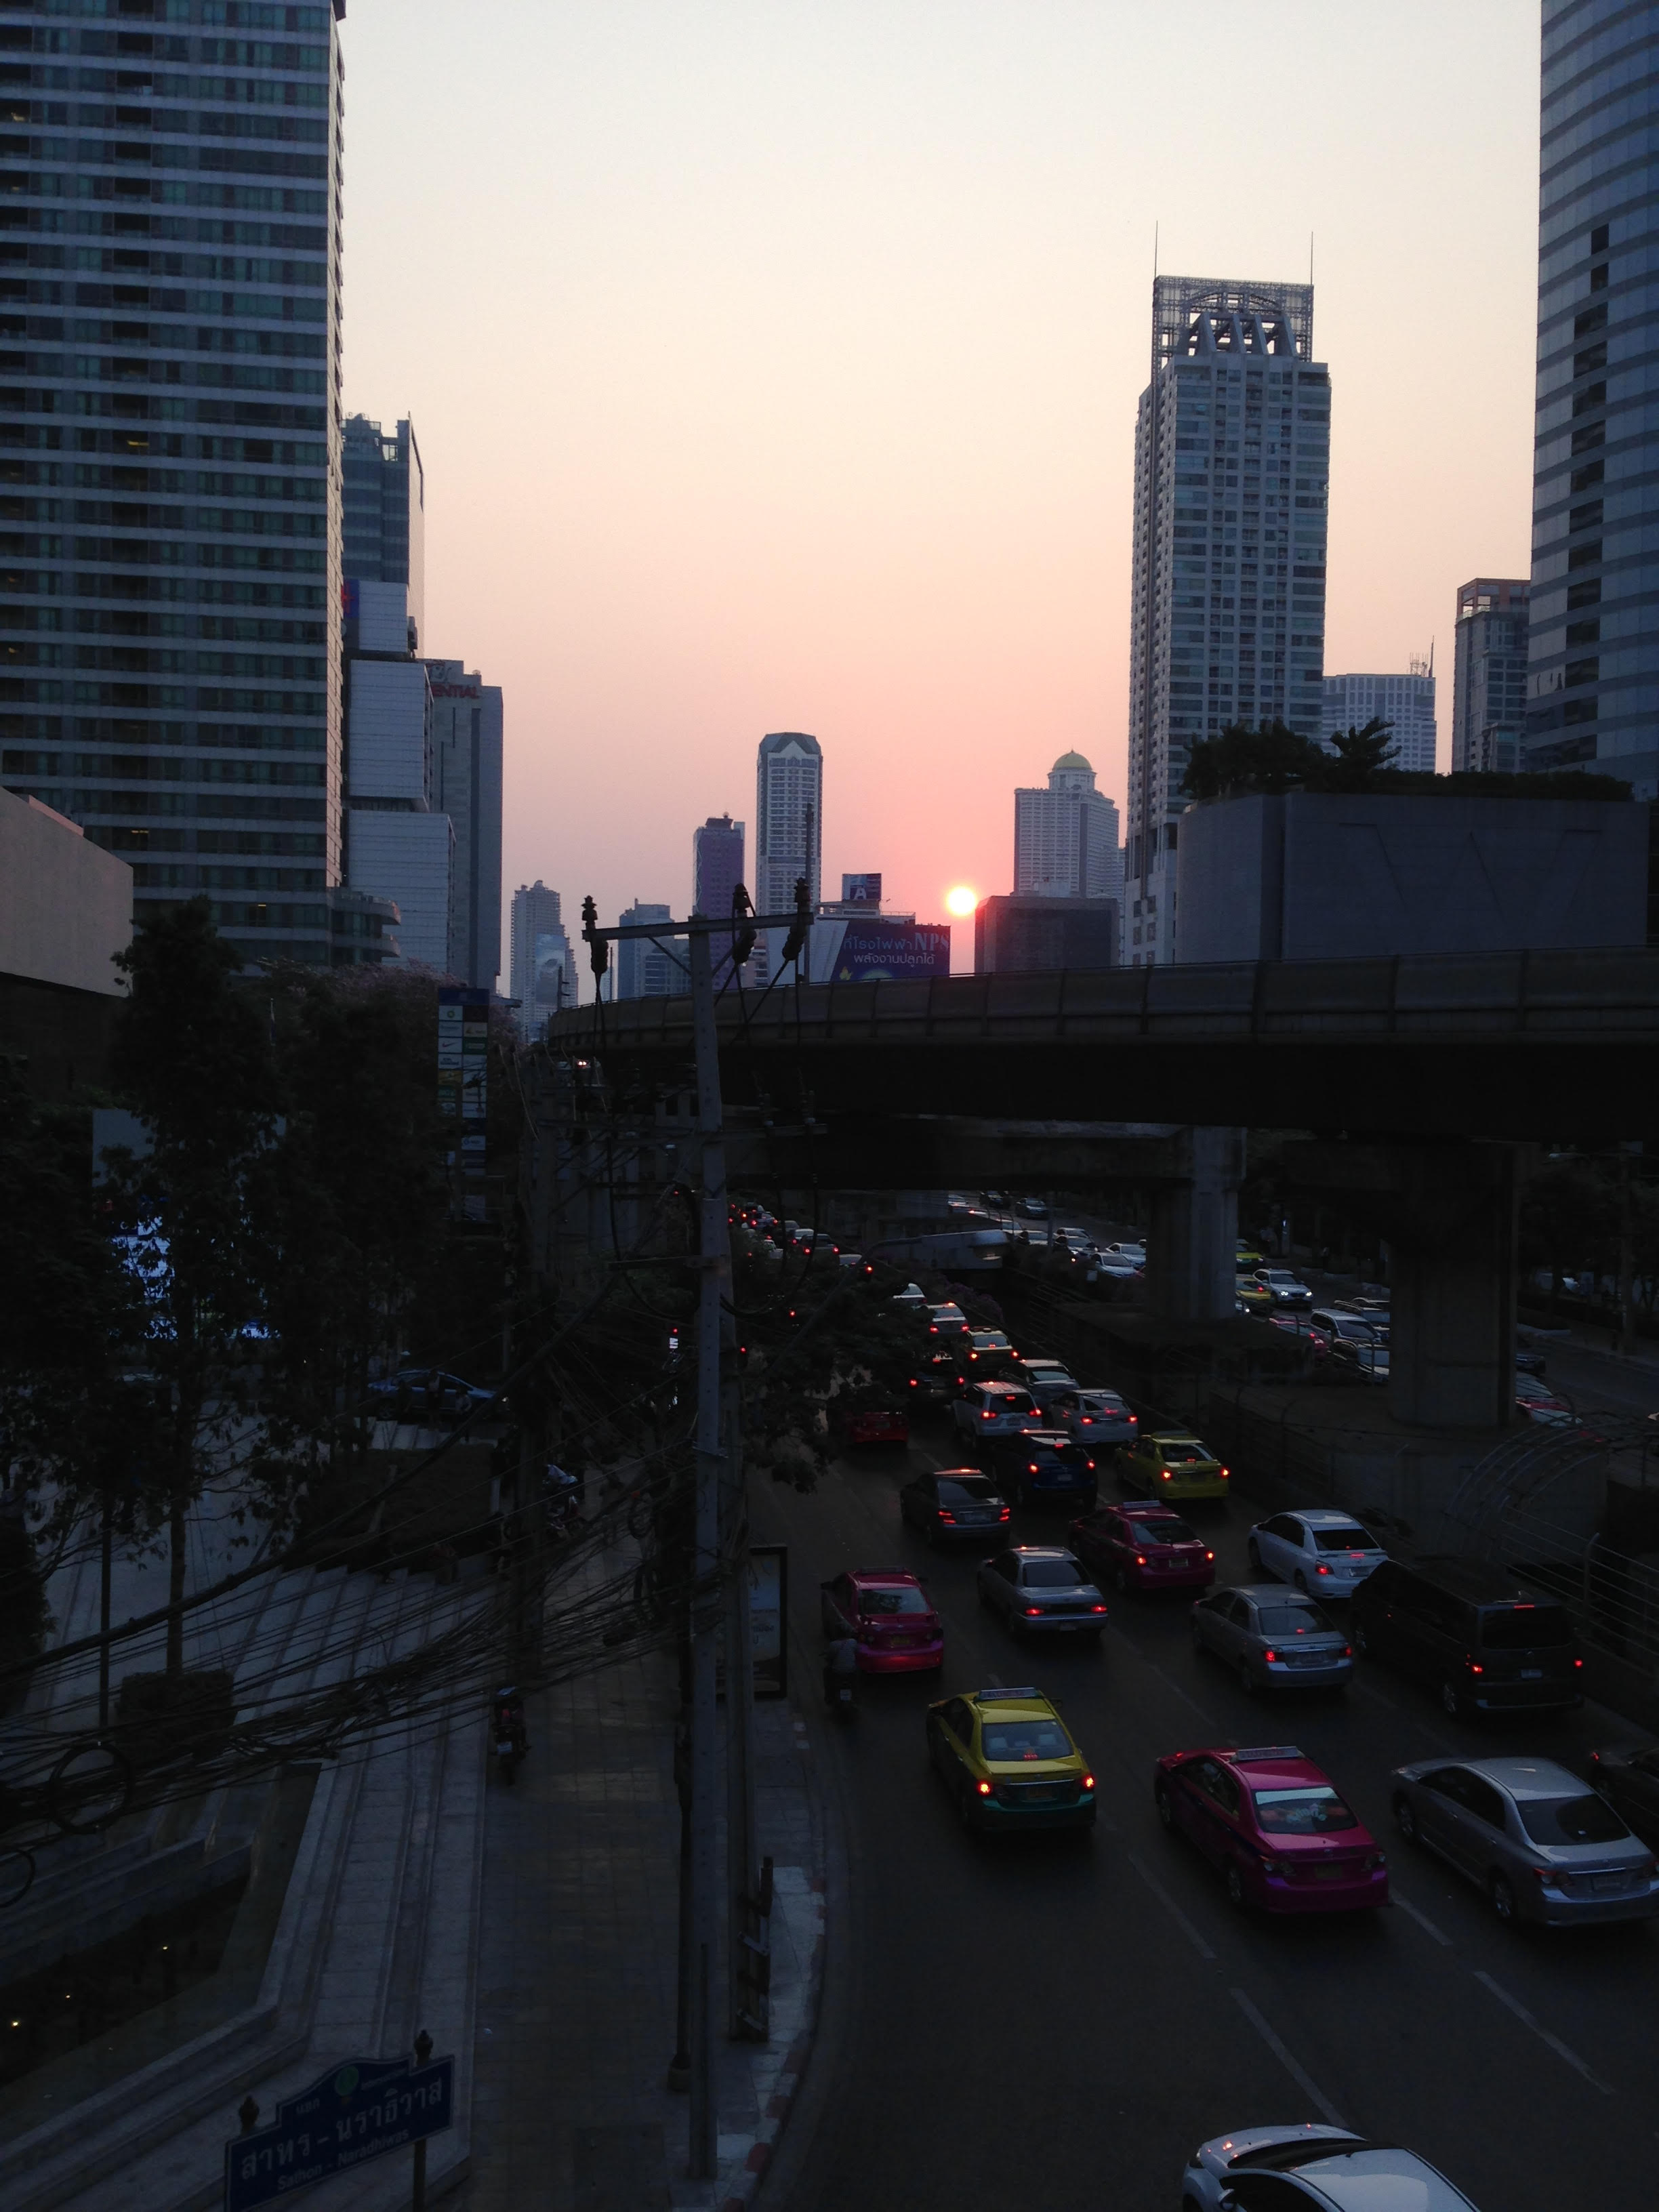 Yannawa__Bangkok__traffic_-_03-12-15.jpeg